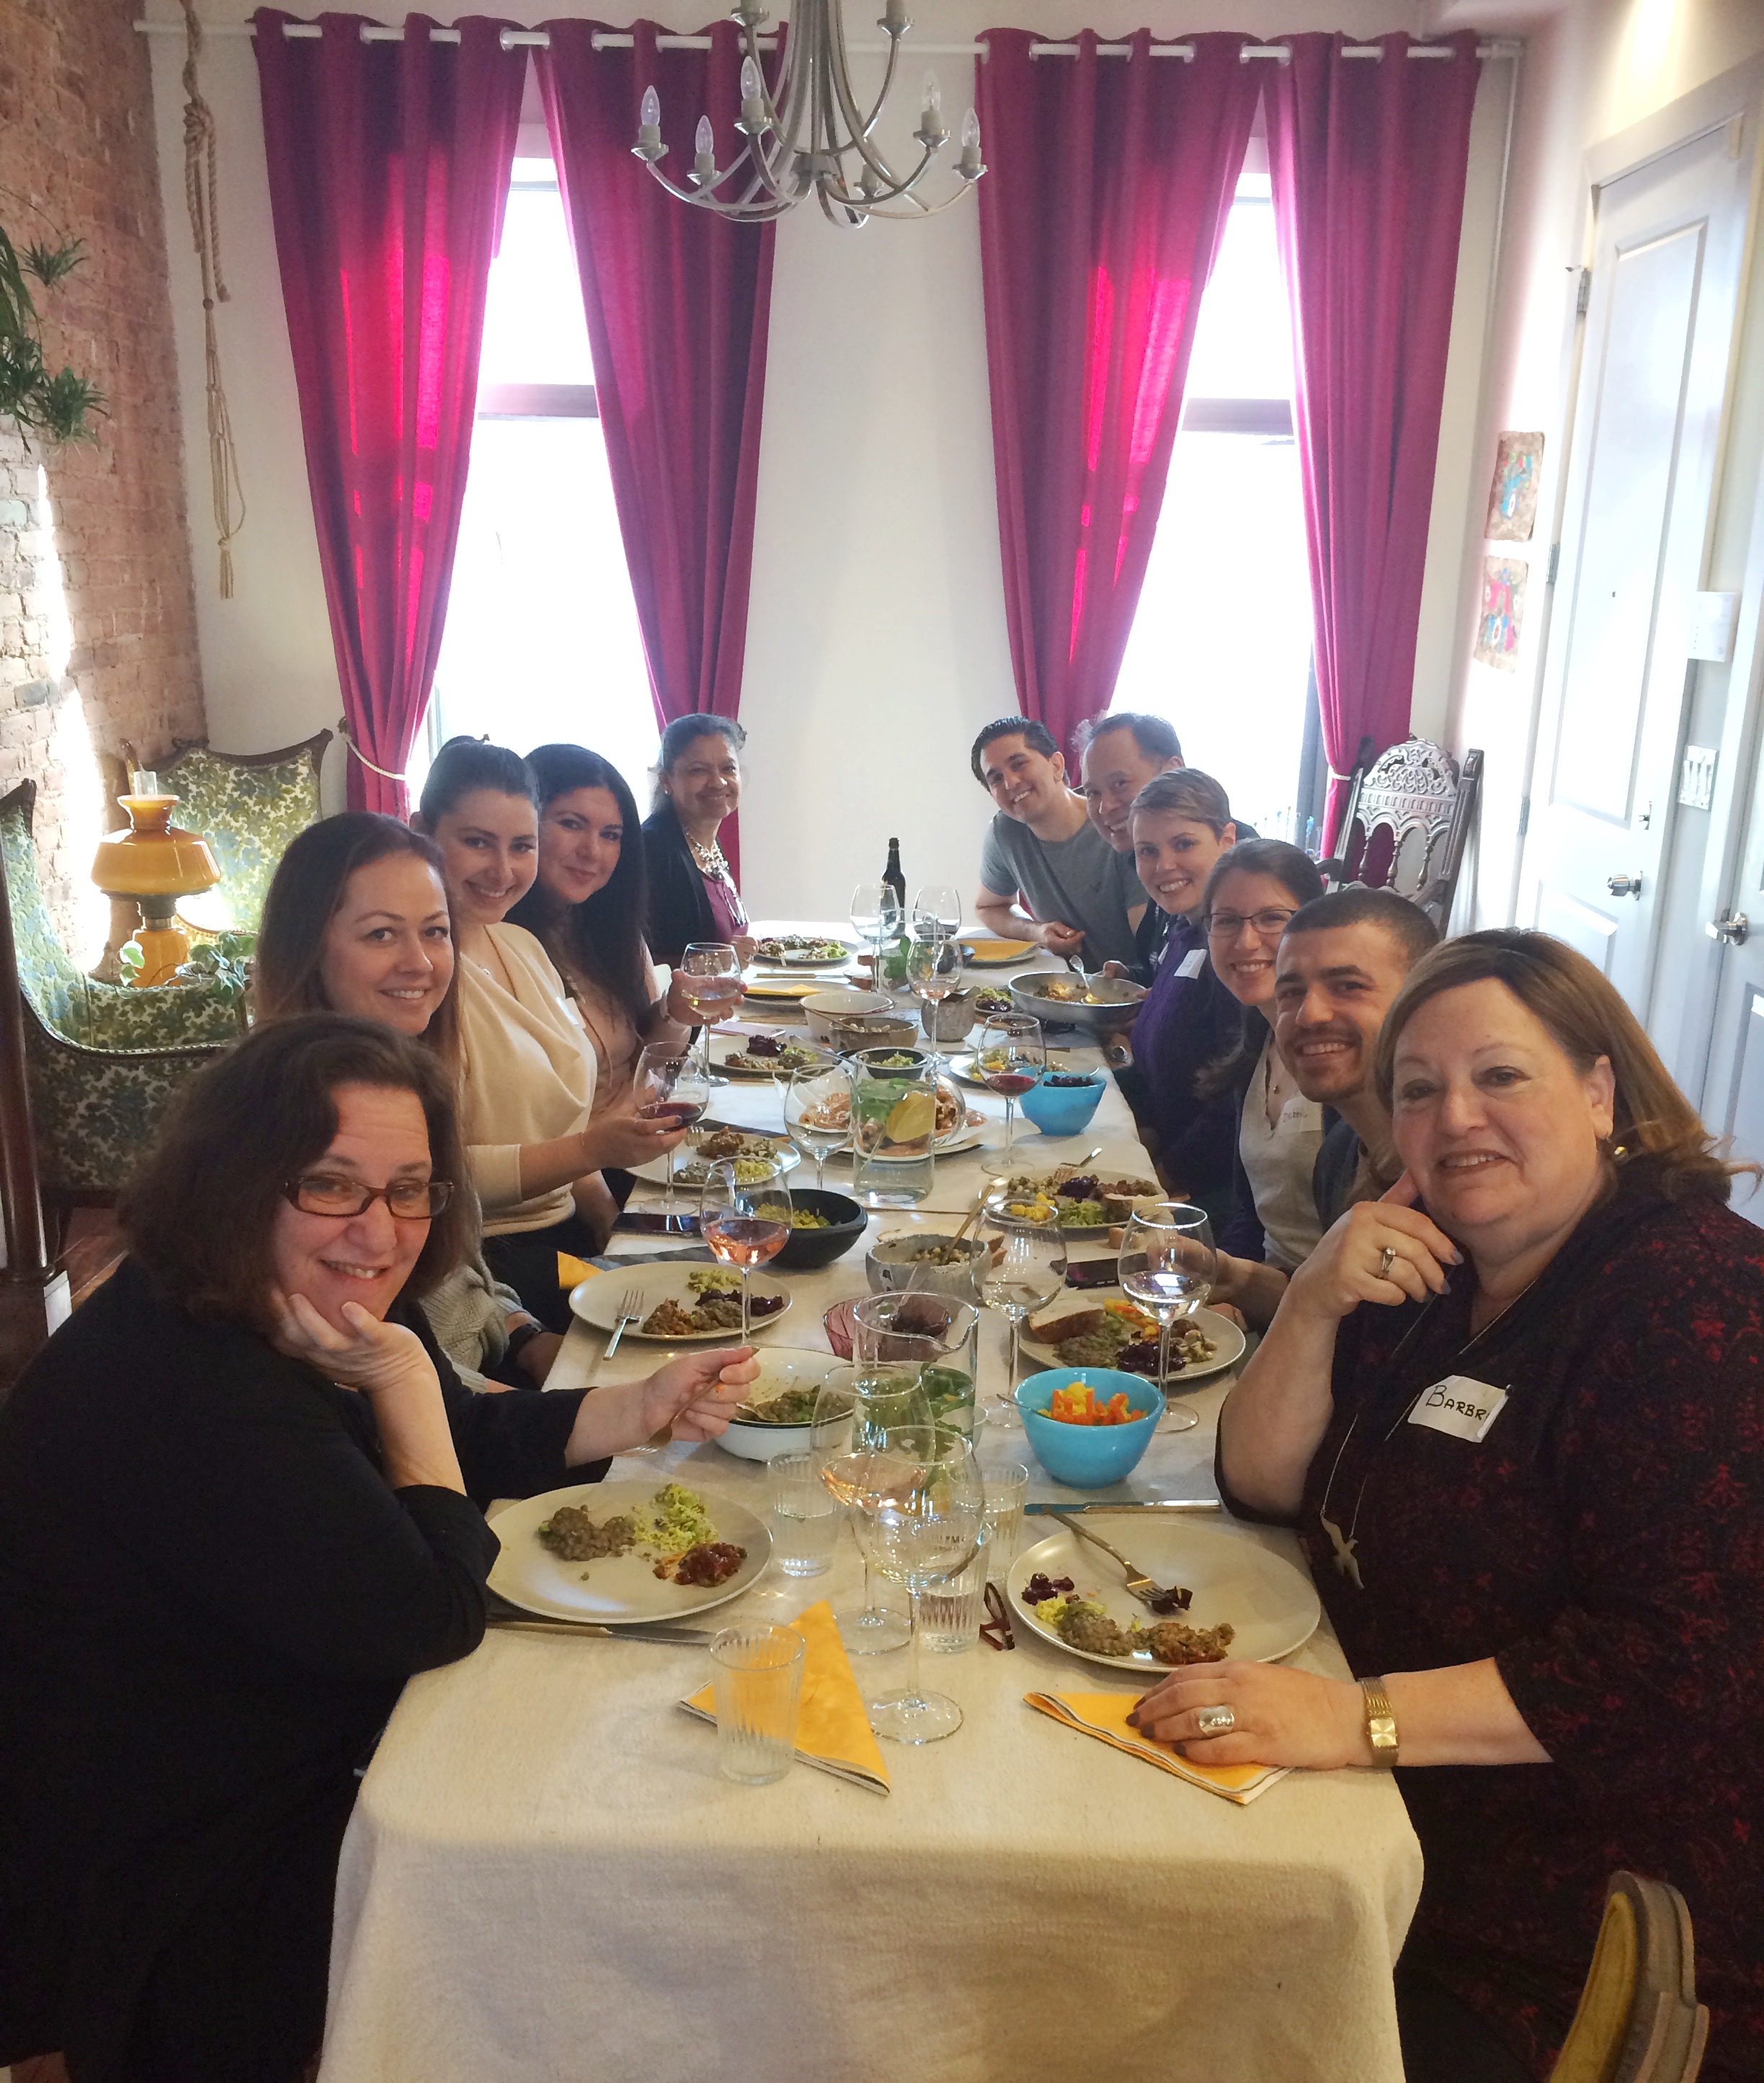 Middle Eastern Home Cooking class Bedford Stuyvesant, NYC, Jan 2017